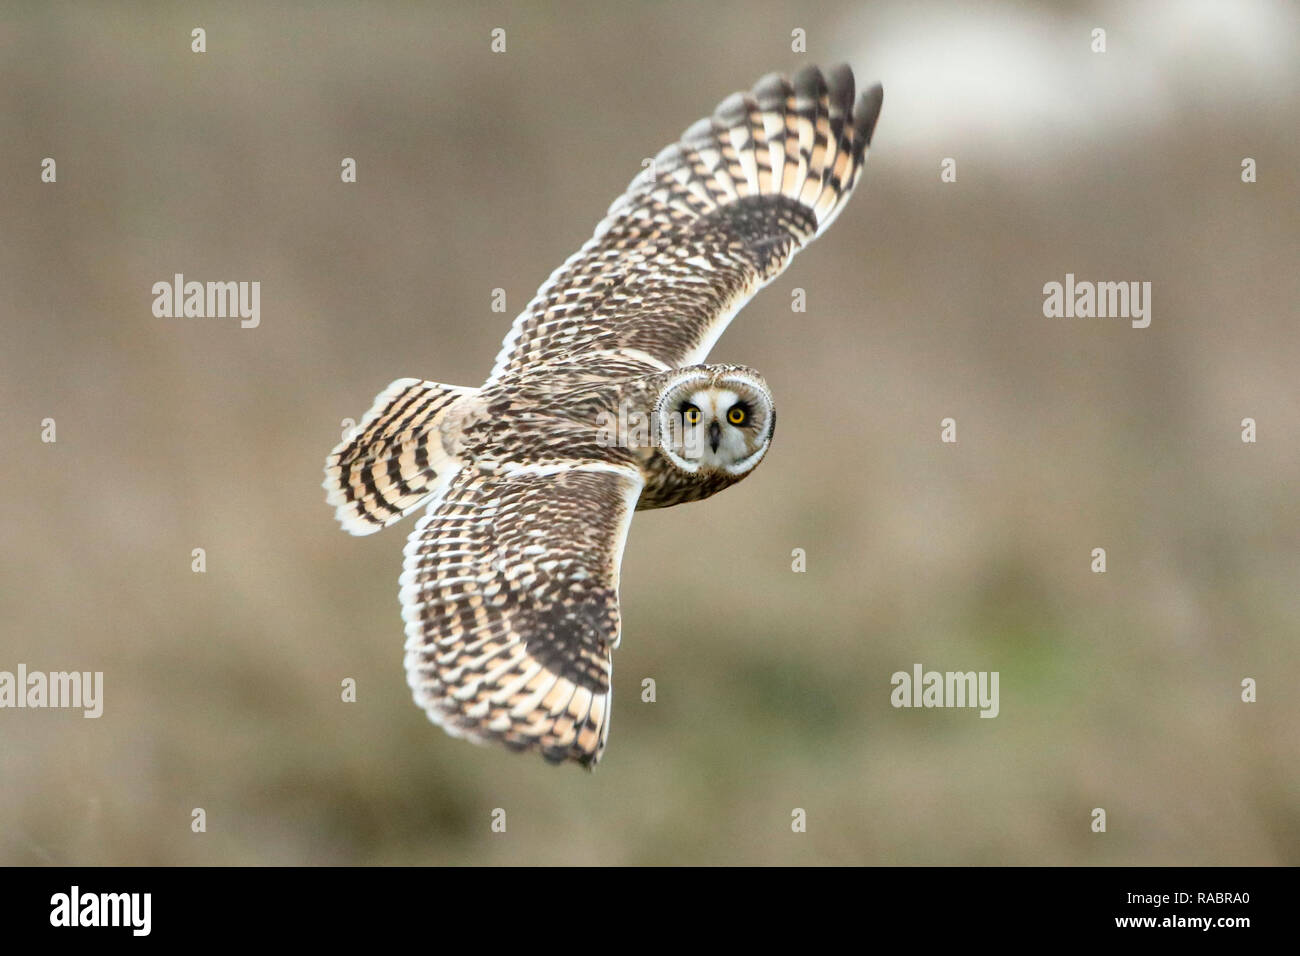 Pevensey Levels, UK. 3rd Jan 2019.UK weather. A Short eared owl (Asio flammeus) hunts over fields on the Pevensey Levels this afternoon.  The owls are regular visitors to the area and can often be seen during the winter period. Pevensey Levels, East Sussex, UK. Credit: Ed Brown/Alamy Live News - Stock Image